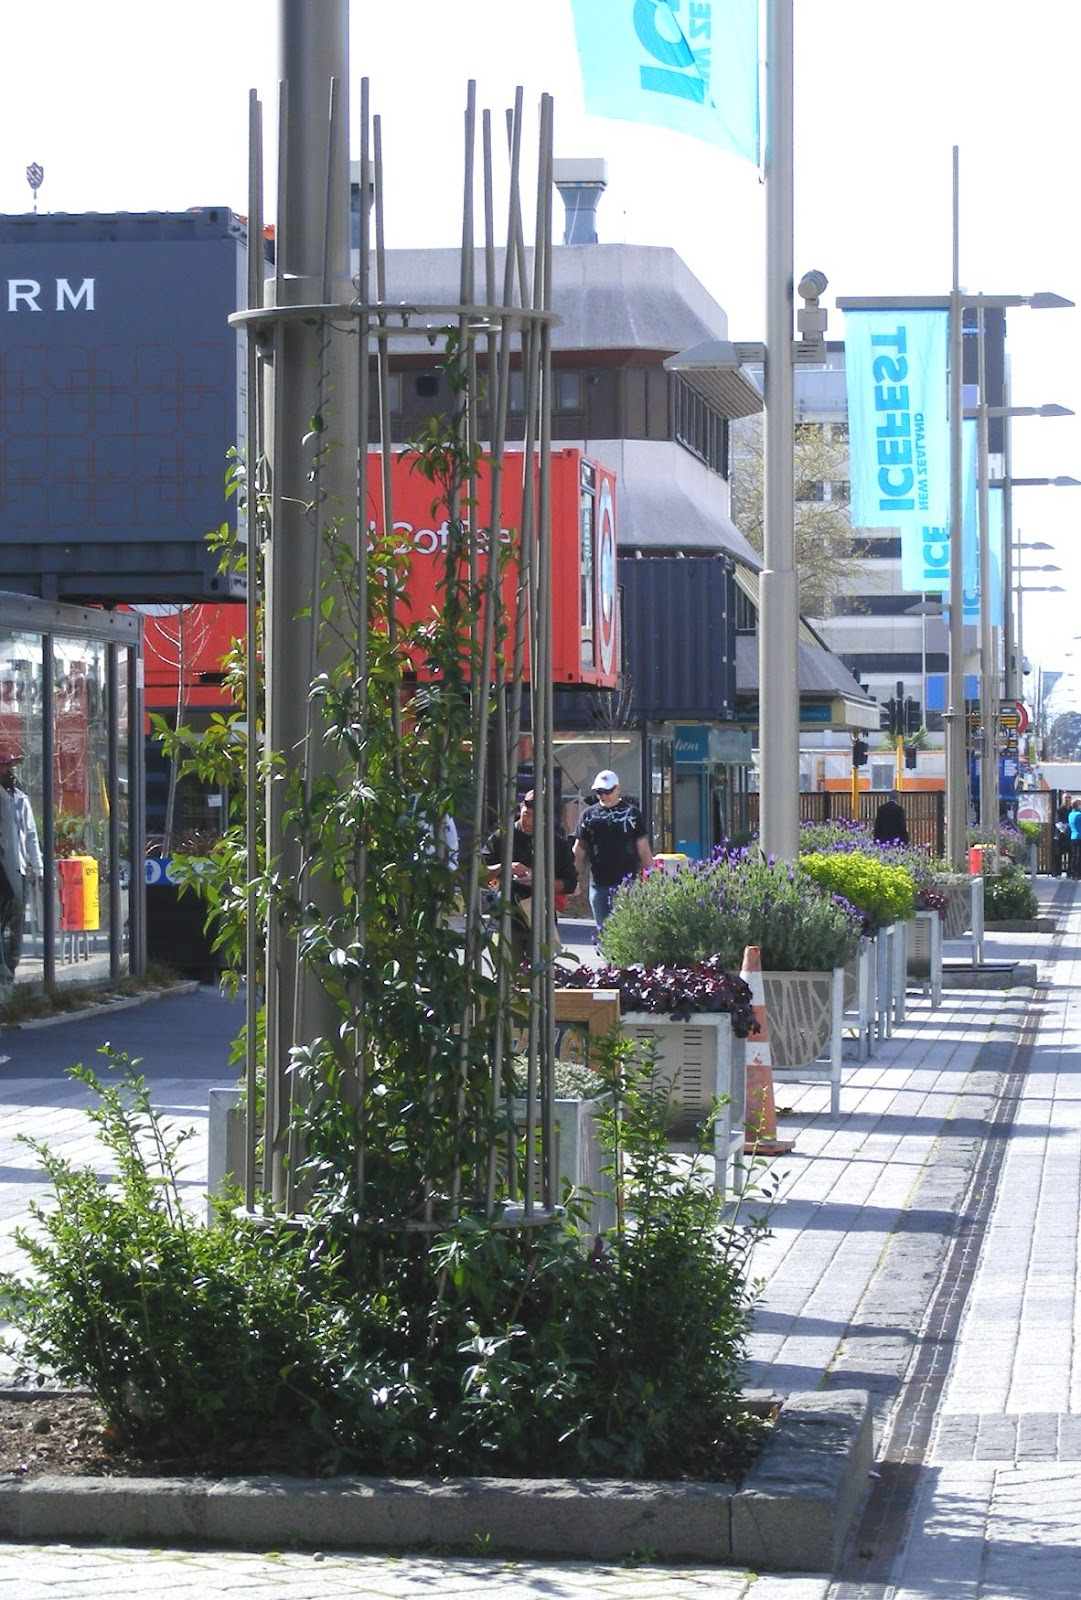 Rachel callaghan landscape architect nz container city for Landscape design courses christchurch